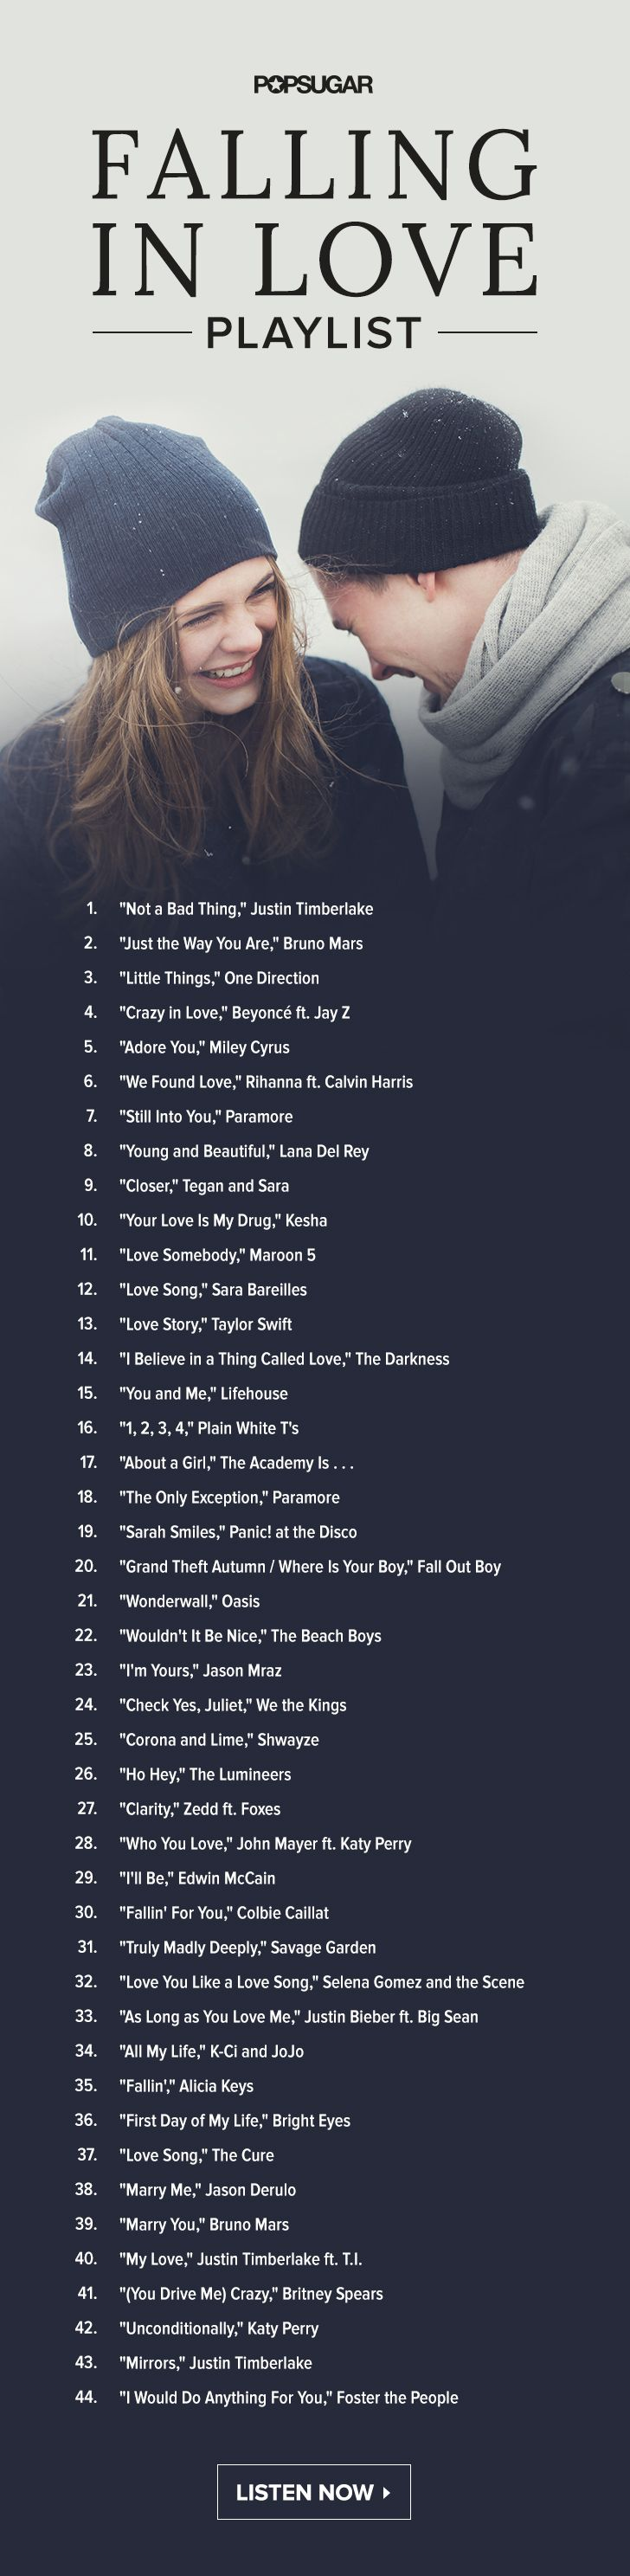 Best love song bands